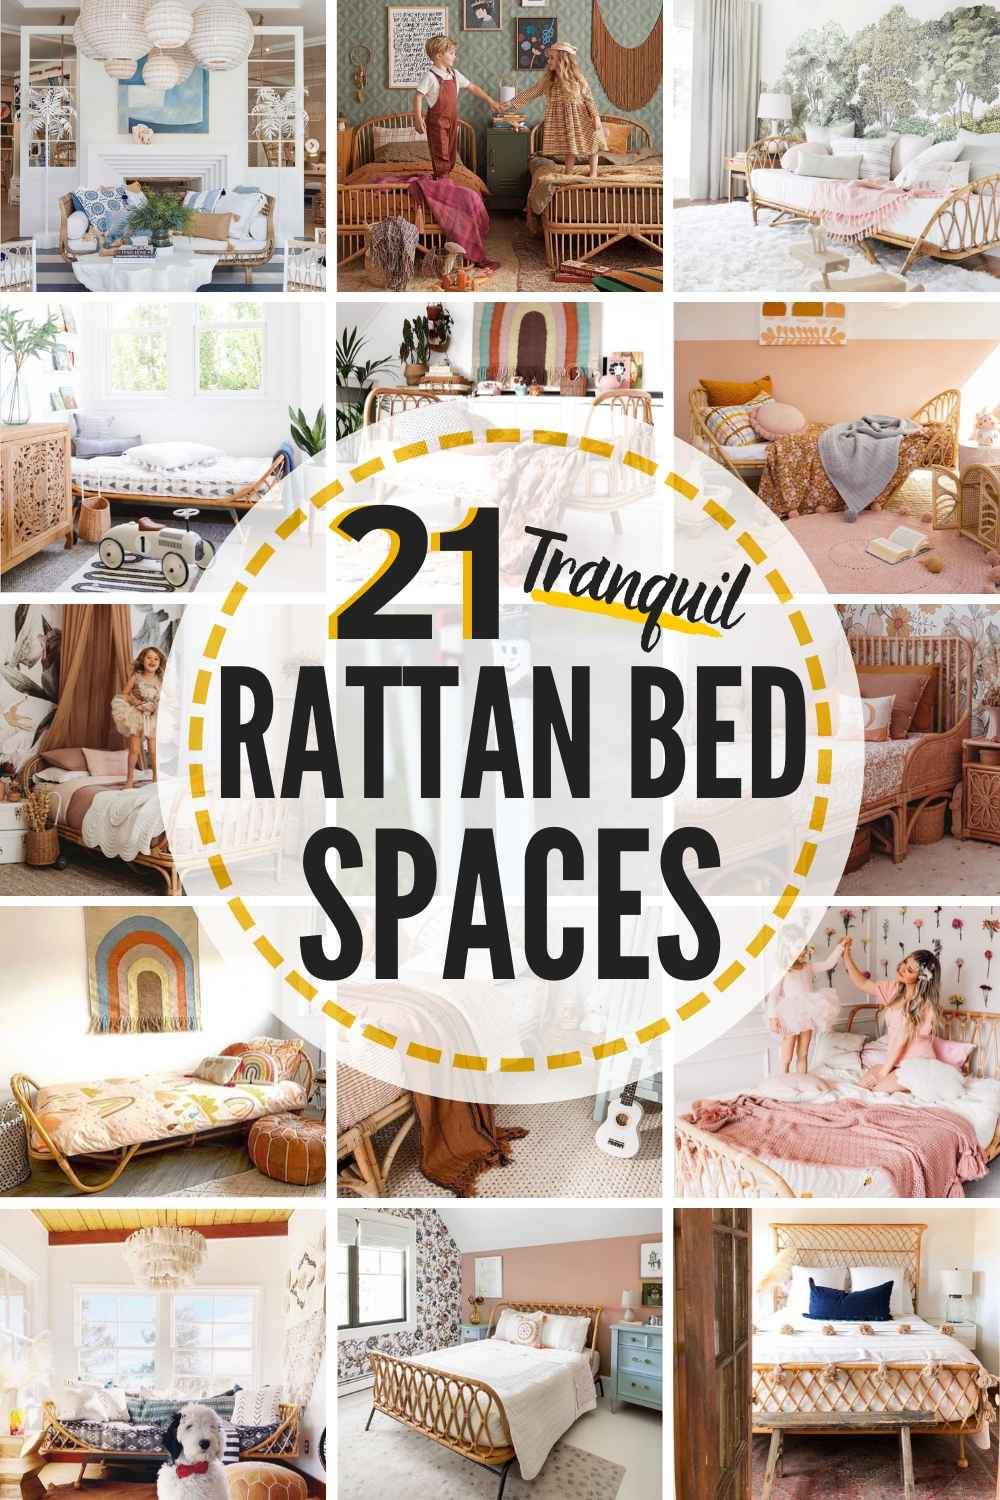 21 Tranquil Rattan Bed Spaces + 8 Stunning Rattan Beds and Rattan Daybeds You Can Buy Online